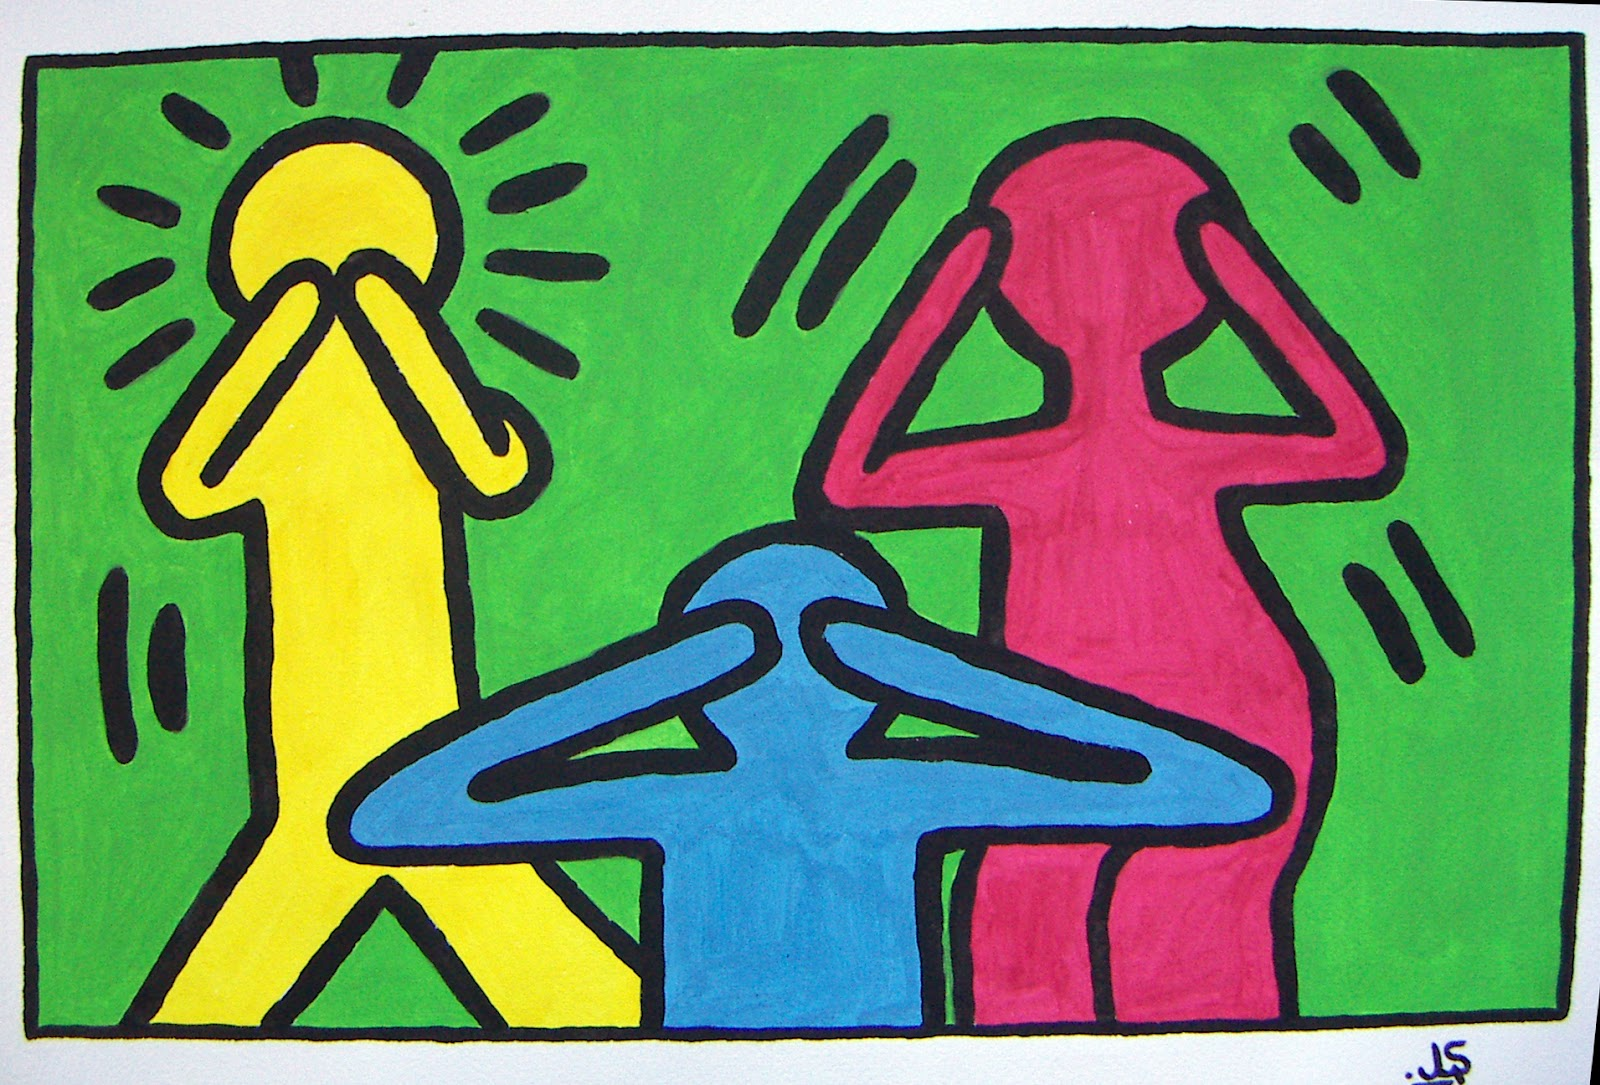 La galer a keith haring ii for Los colores para pintar